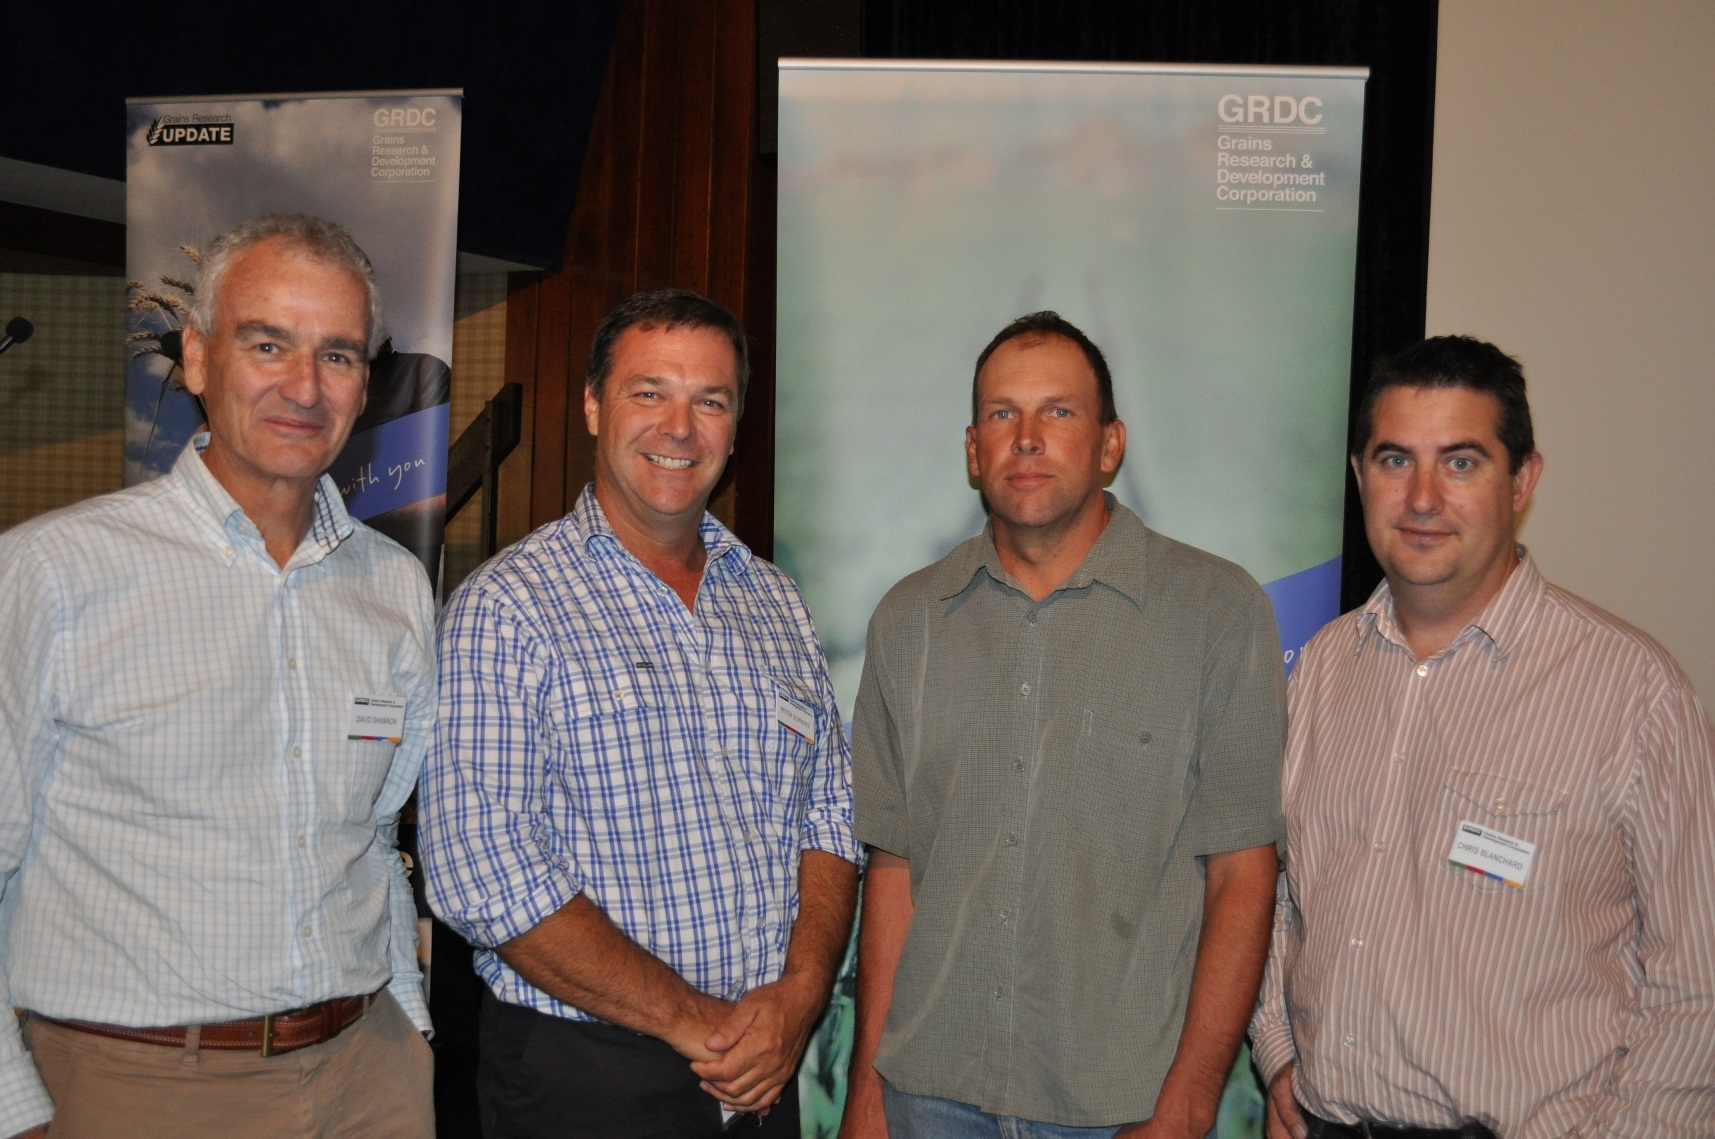 David Shannon, GRDC Southern Regional Panel chairman; Peter Schwarz, GRDC Southern Regional Panel deputy chair; Craig Reynolds, Shepparton (Vic) district grower; Dr Chris Blanchard, GRDC Southern Regional Panel member, Charles Sturt University, Wagga Wagga.